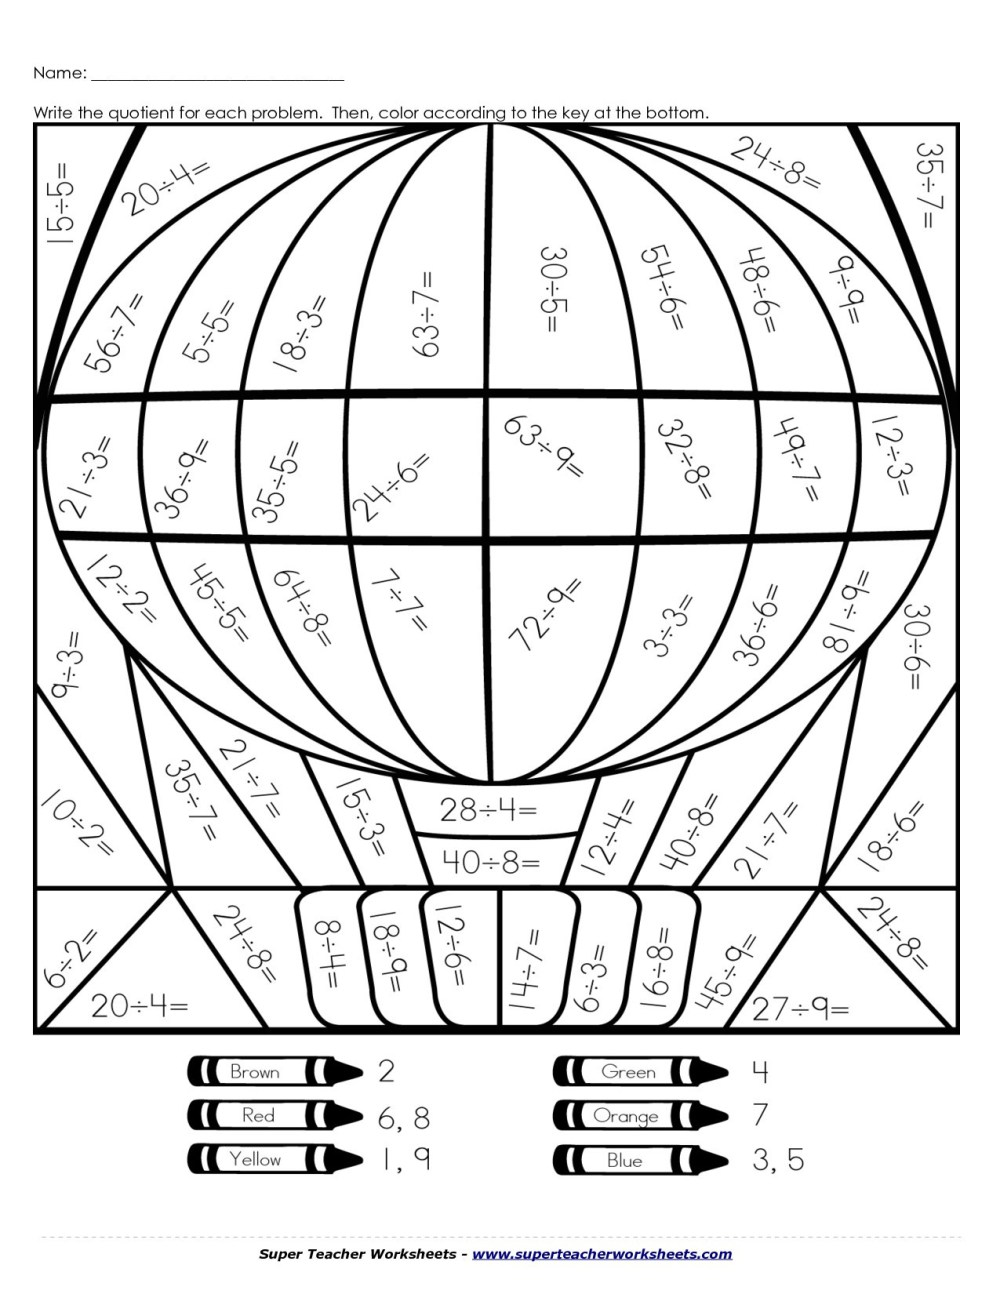 medium resolution of 5 Free Math Worksheets Third Grade 3 Addition Add 4 4 Digit Numbers In  Columns - apocalomegaproductions.com